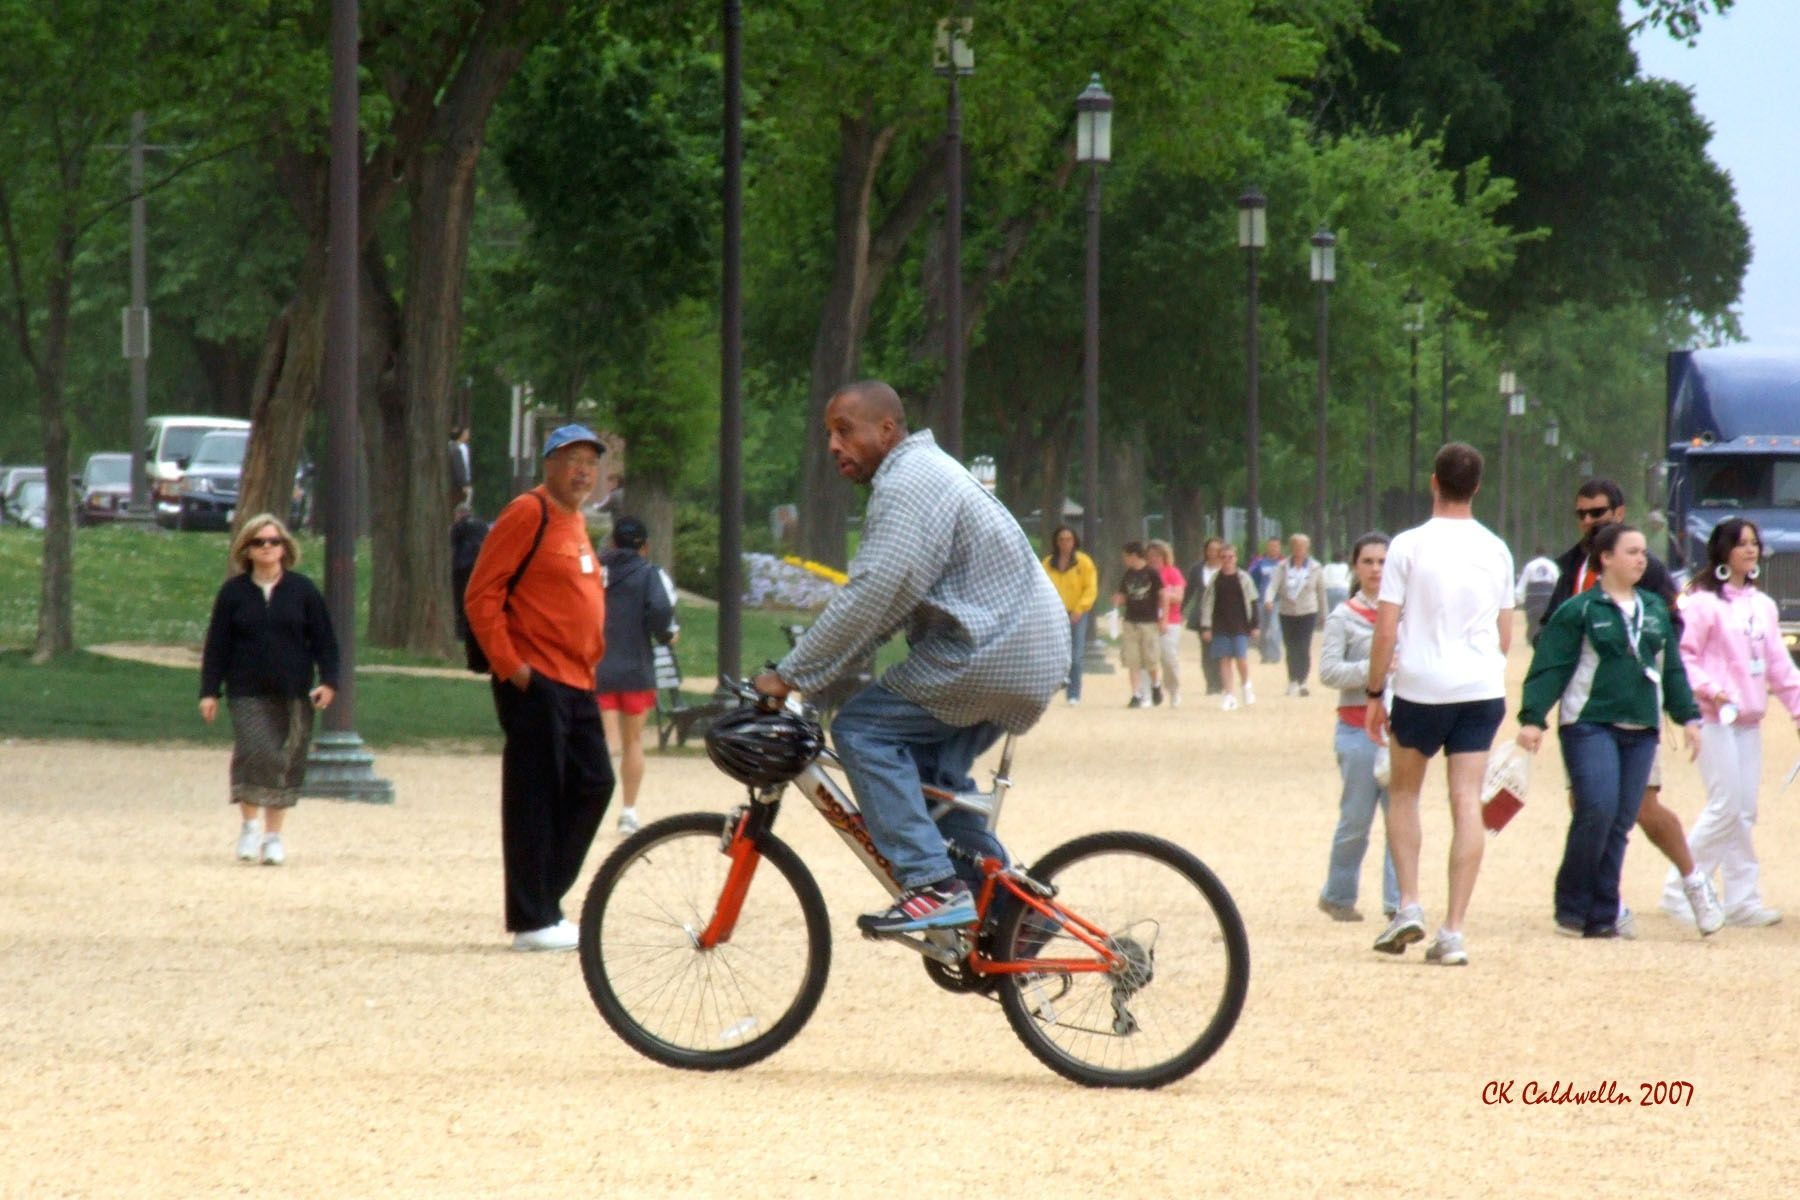 I Had Been Playing Ultimate Frisbee And Stupidly Took Off Chasing My Bike Thankfully My Younger And Faster Friends Took Off With Me Once They Realized